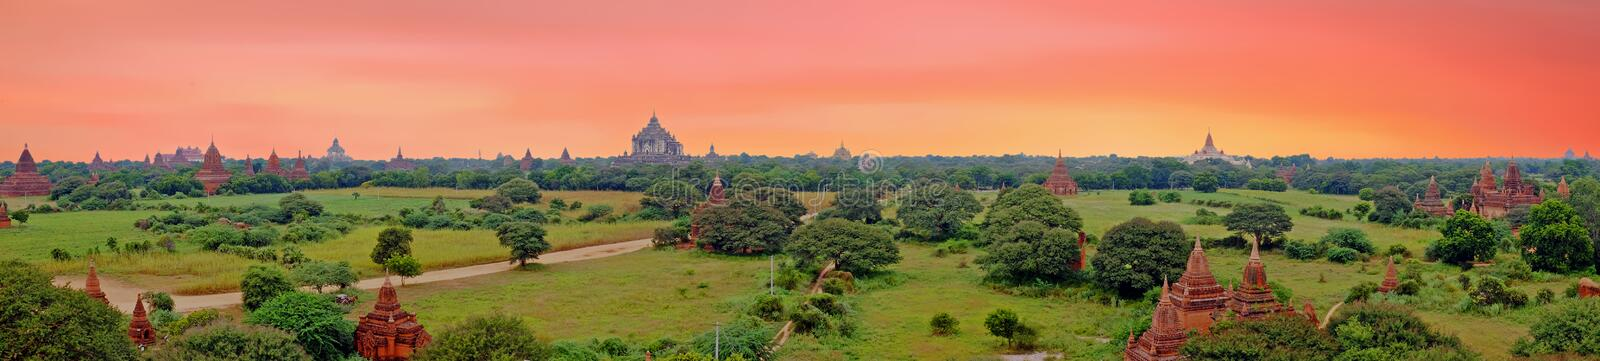 Scenic view of buddhist temples in Bagan , Myanmar royalty free stock photo